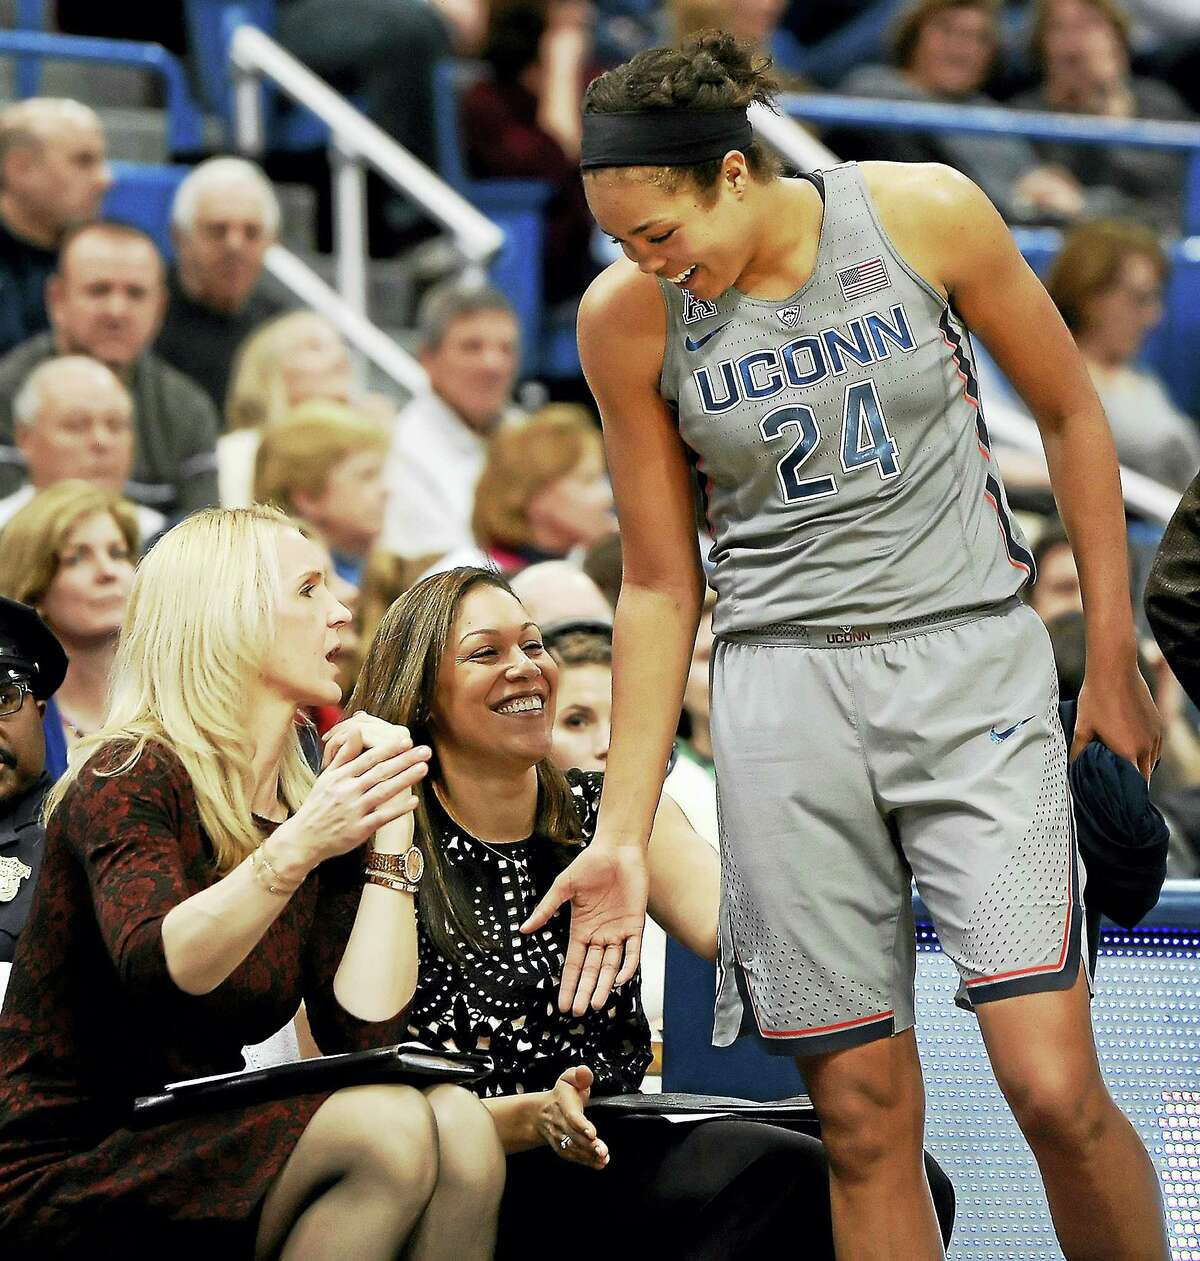 UConn assistant coaches Shea Ralph, left, and Marisa Moseley, center, congratulate Napheesa Collier as she comes out of a game earlier this season.